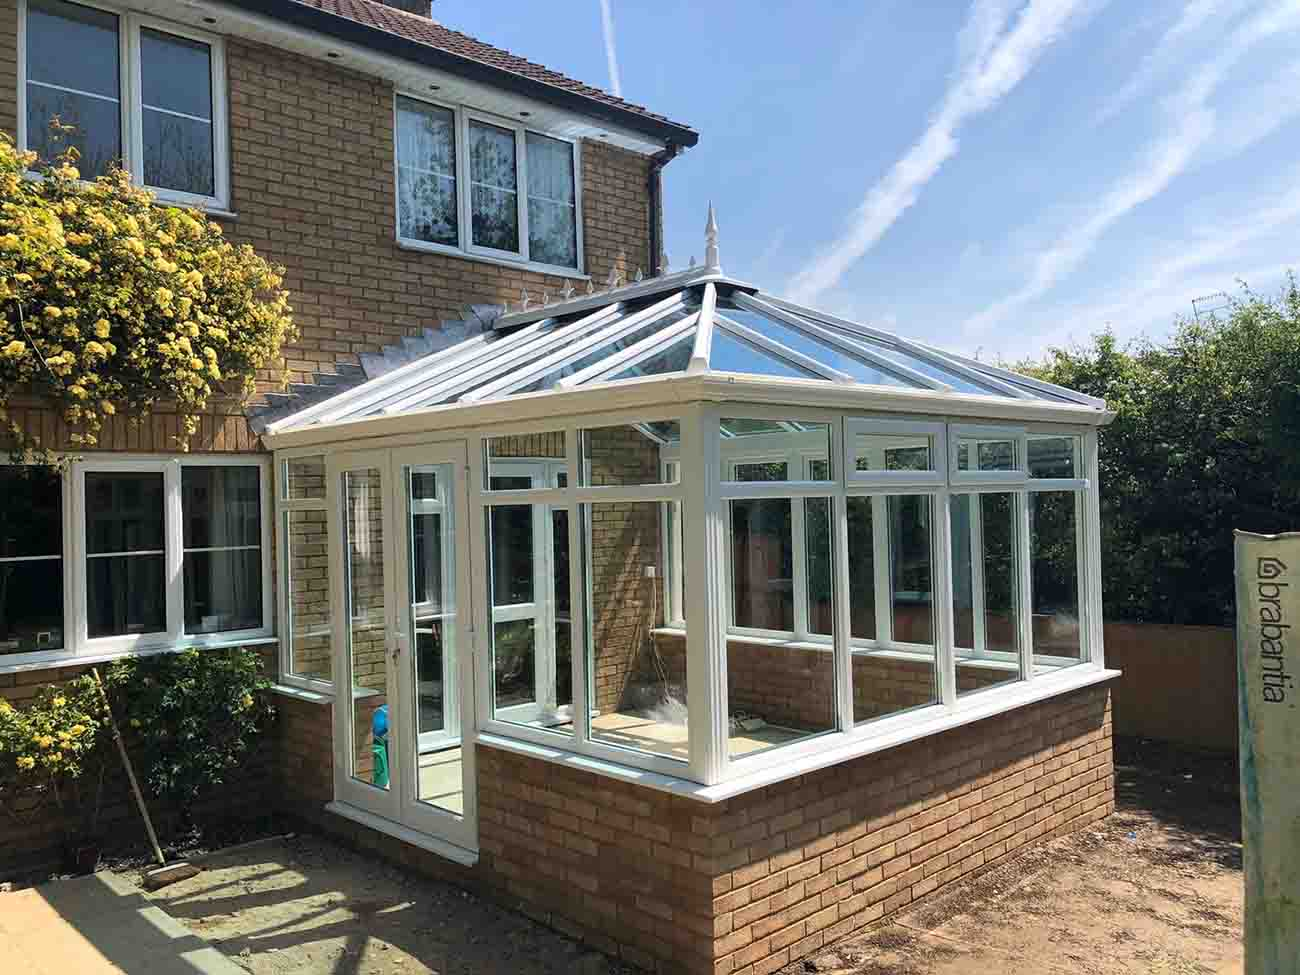 New conservatory roof replacement